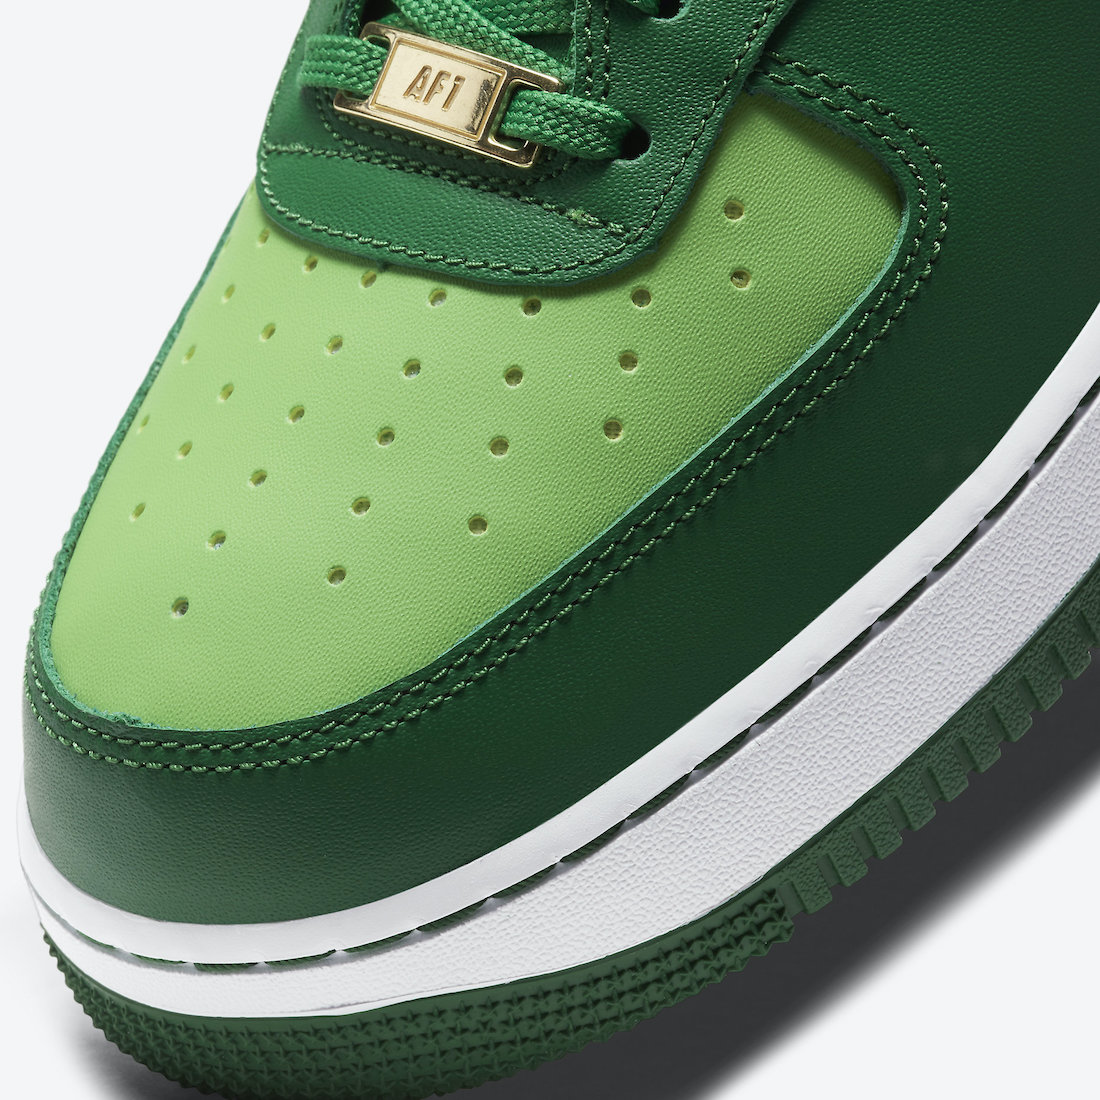 Nike Air Force 1 St. Patricks Day DD8458-300 Release Date Info